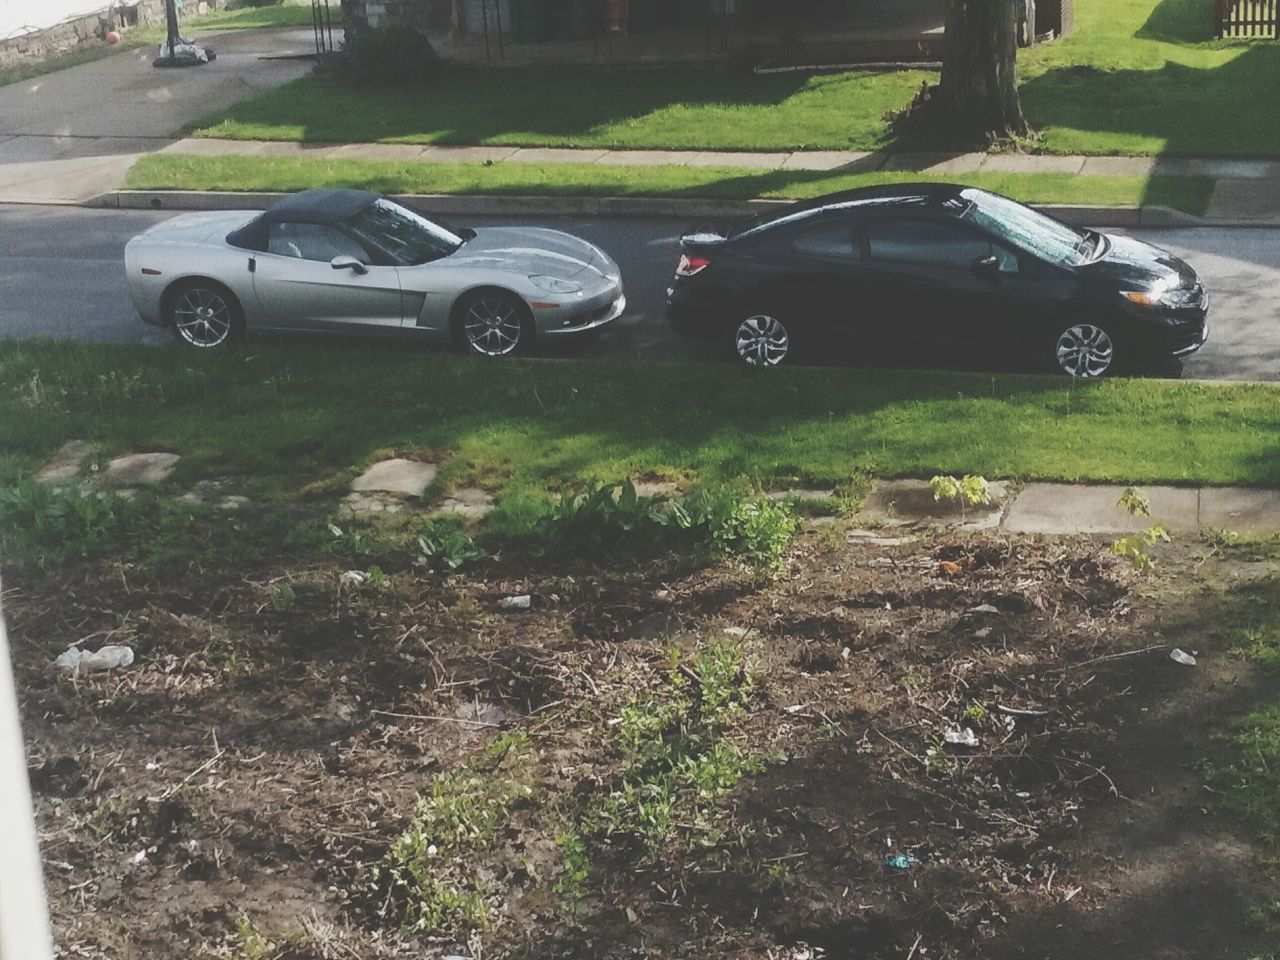 car, transportation, land vehicle, day, no people, grass, outdoors